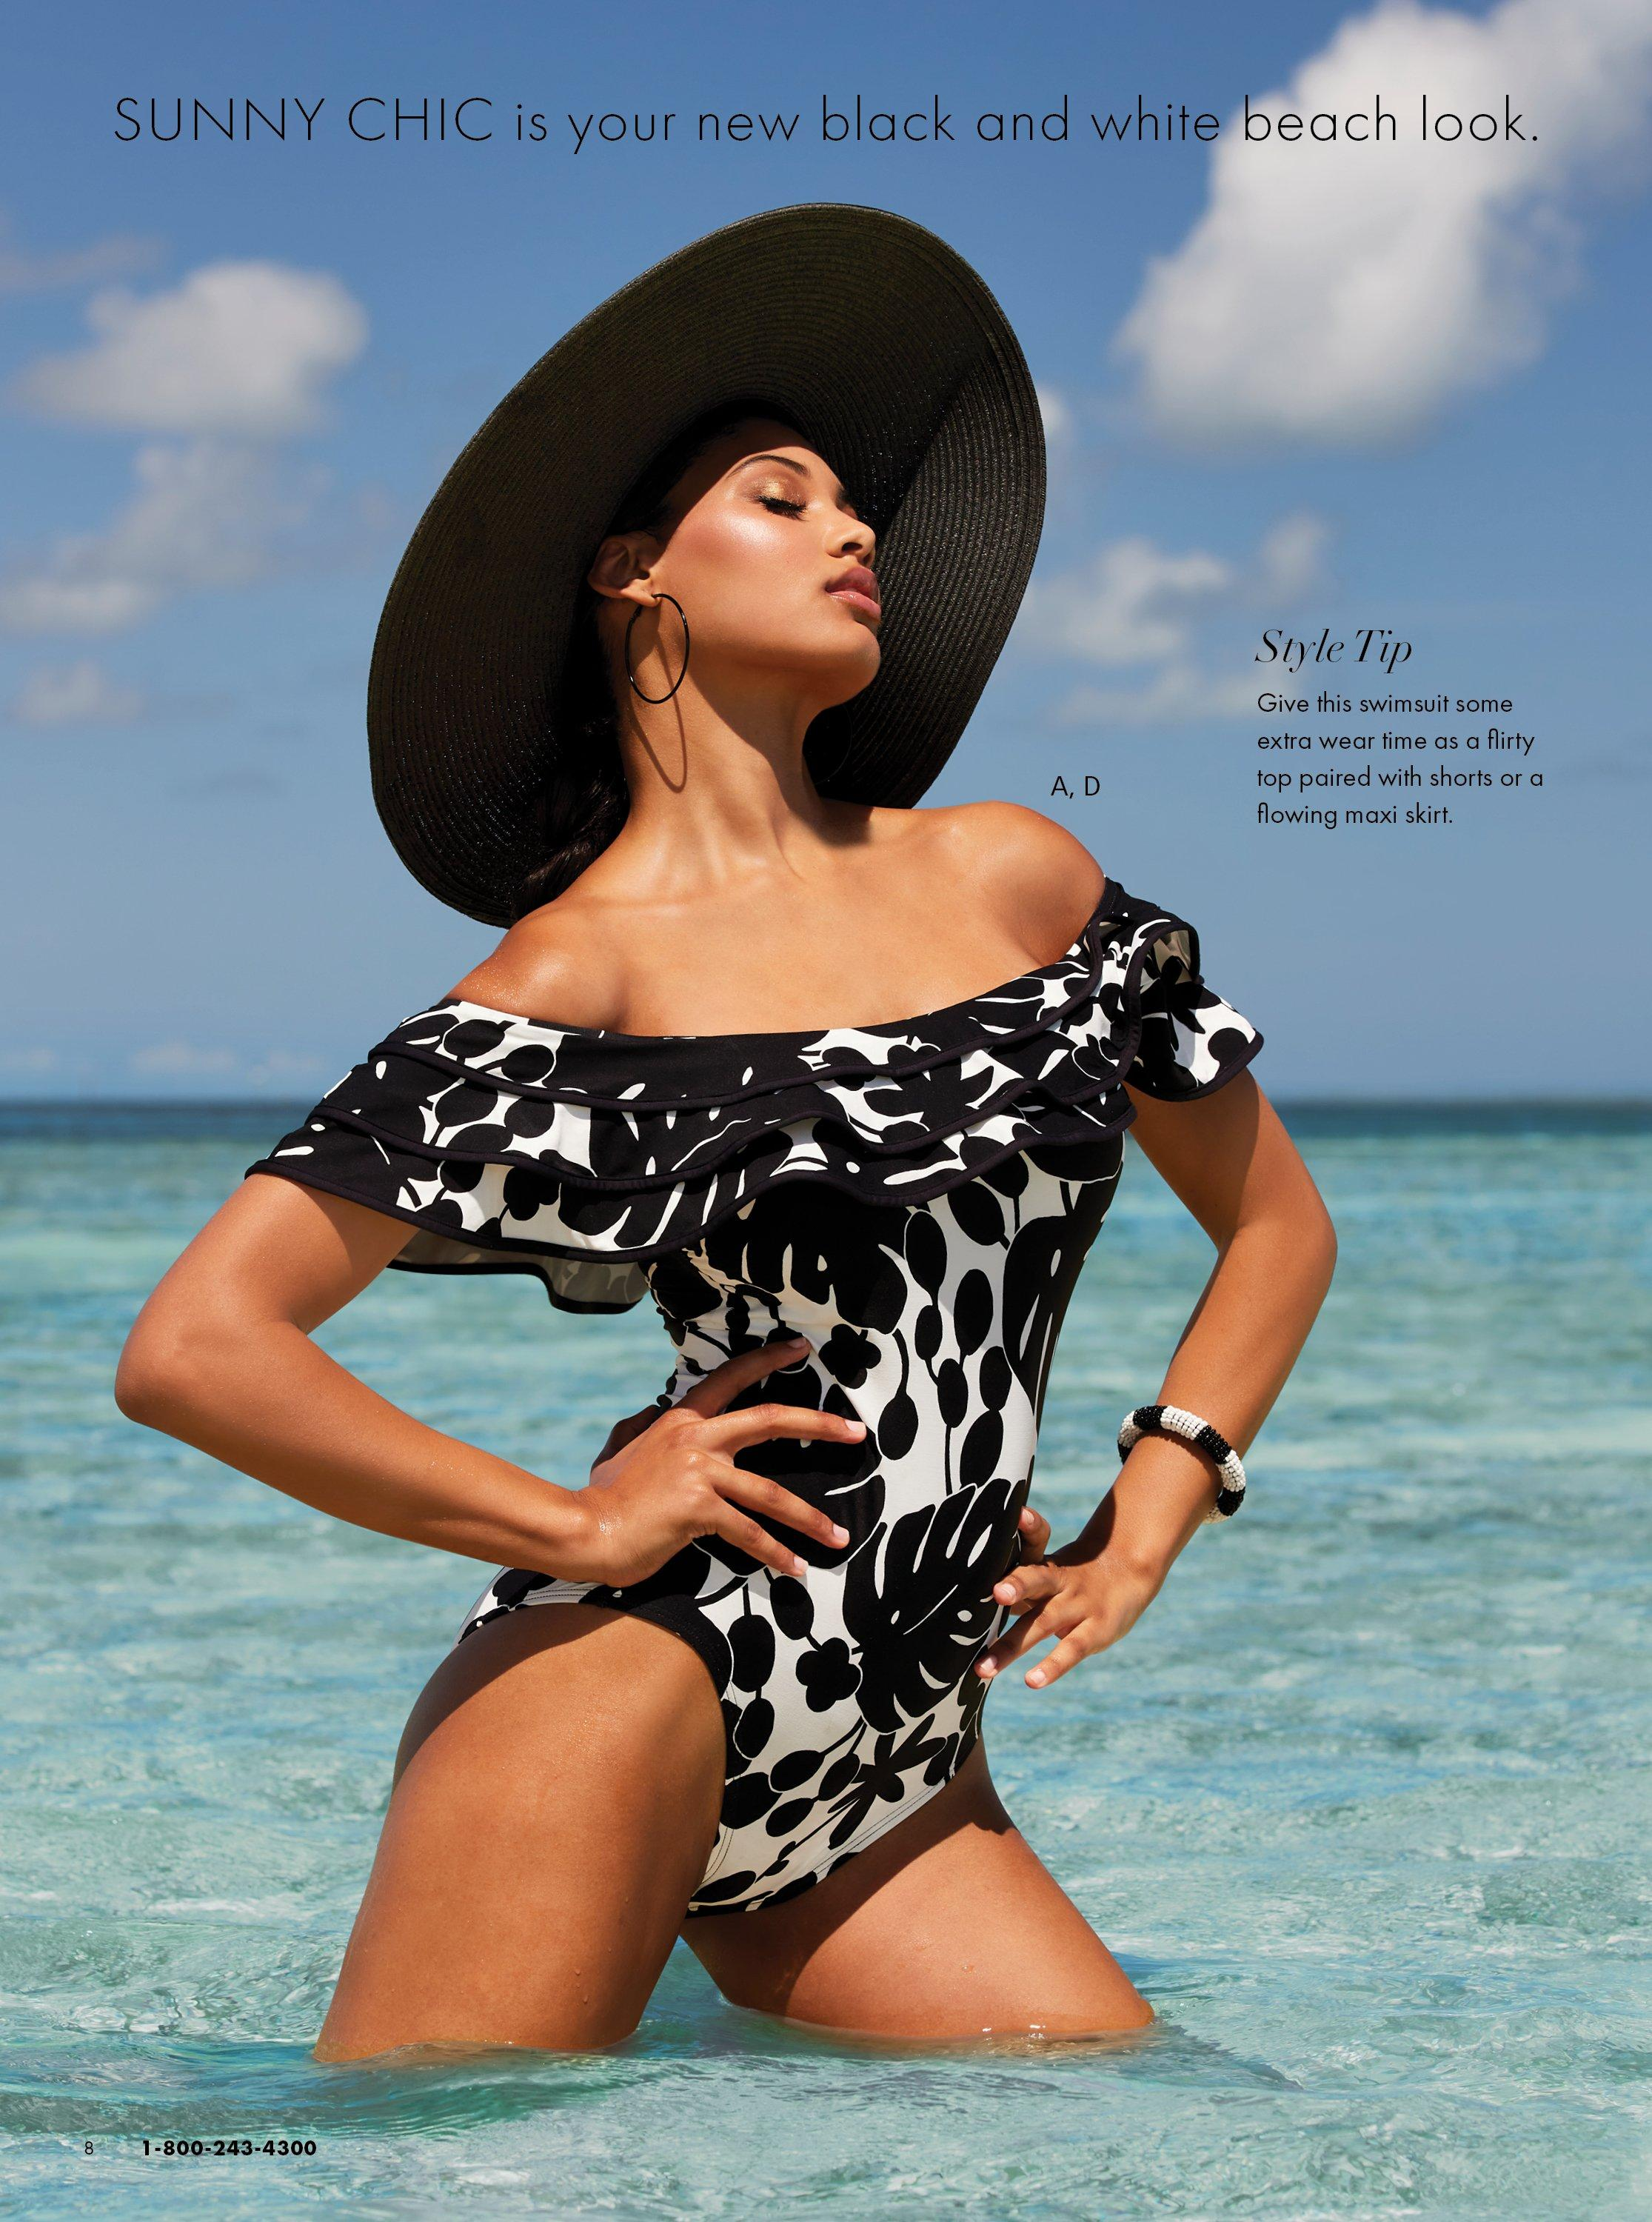 model wearing a black and white ruffle off-the-shoulder one piece swimsuit and a black floppy hat.